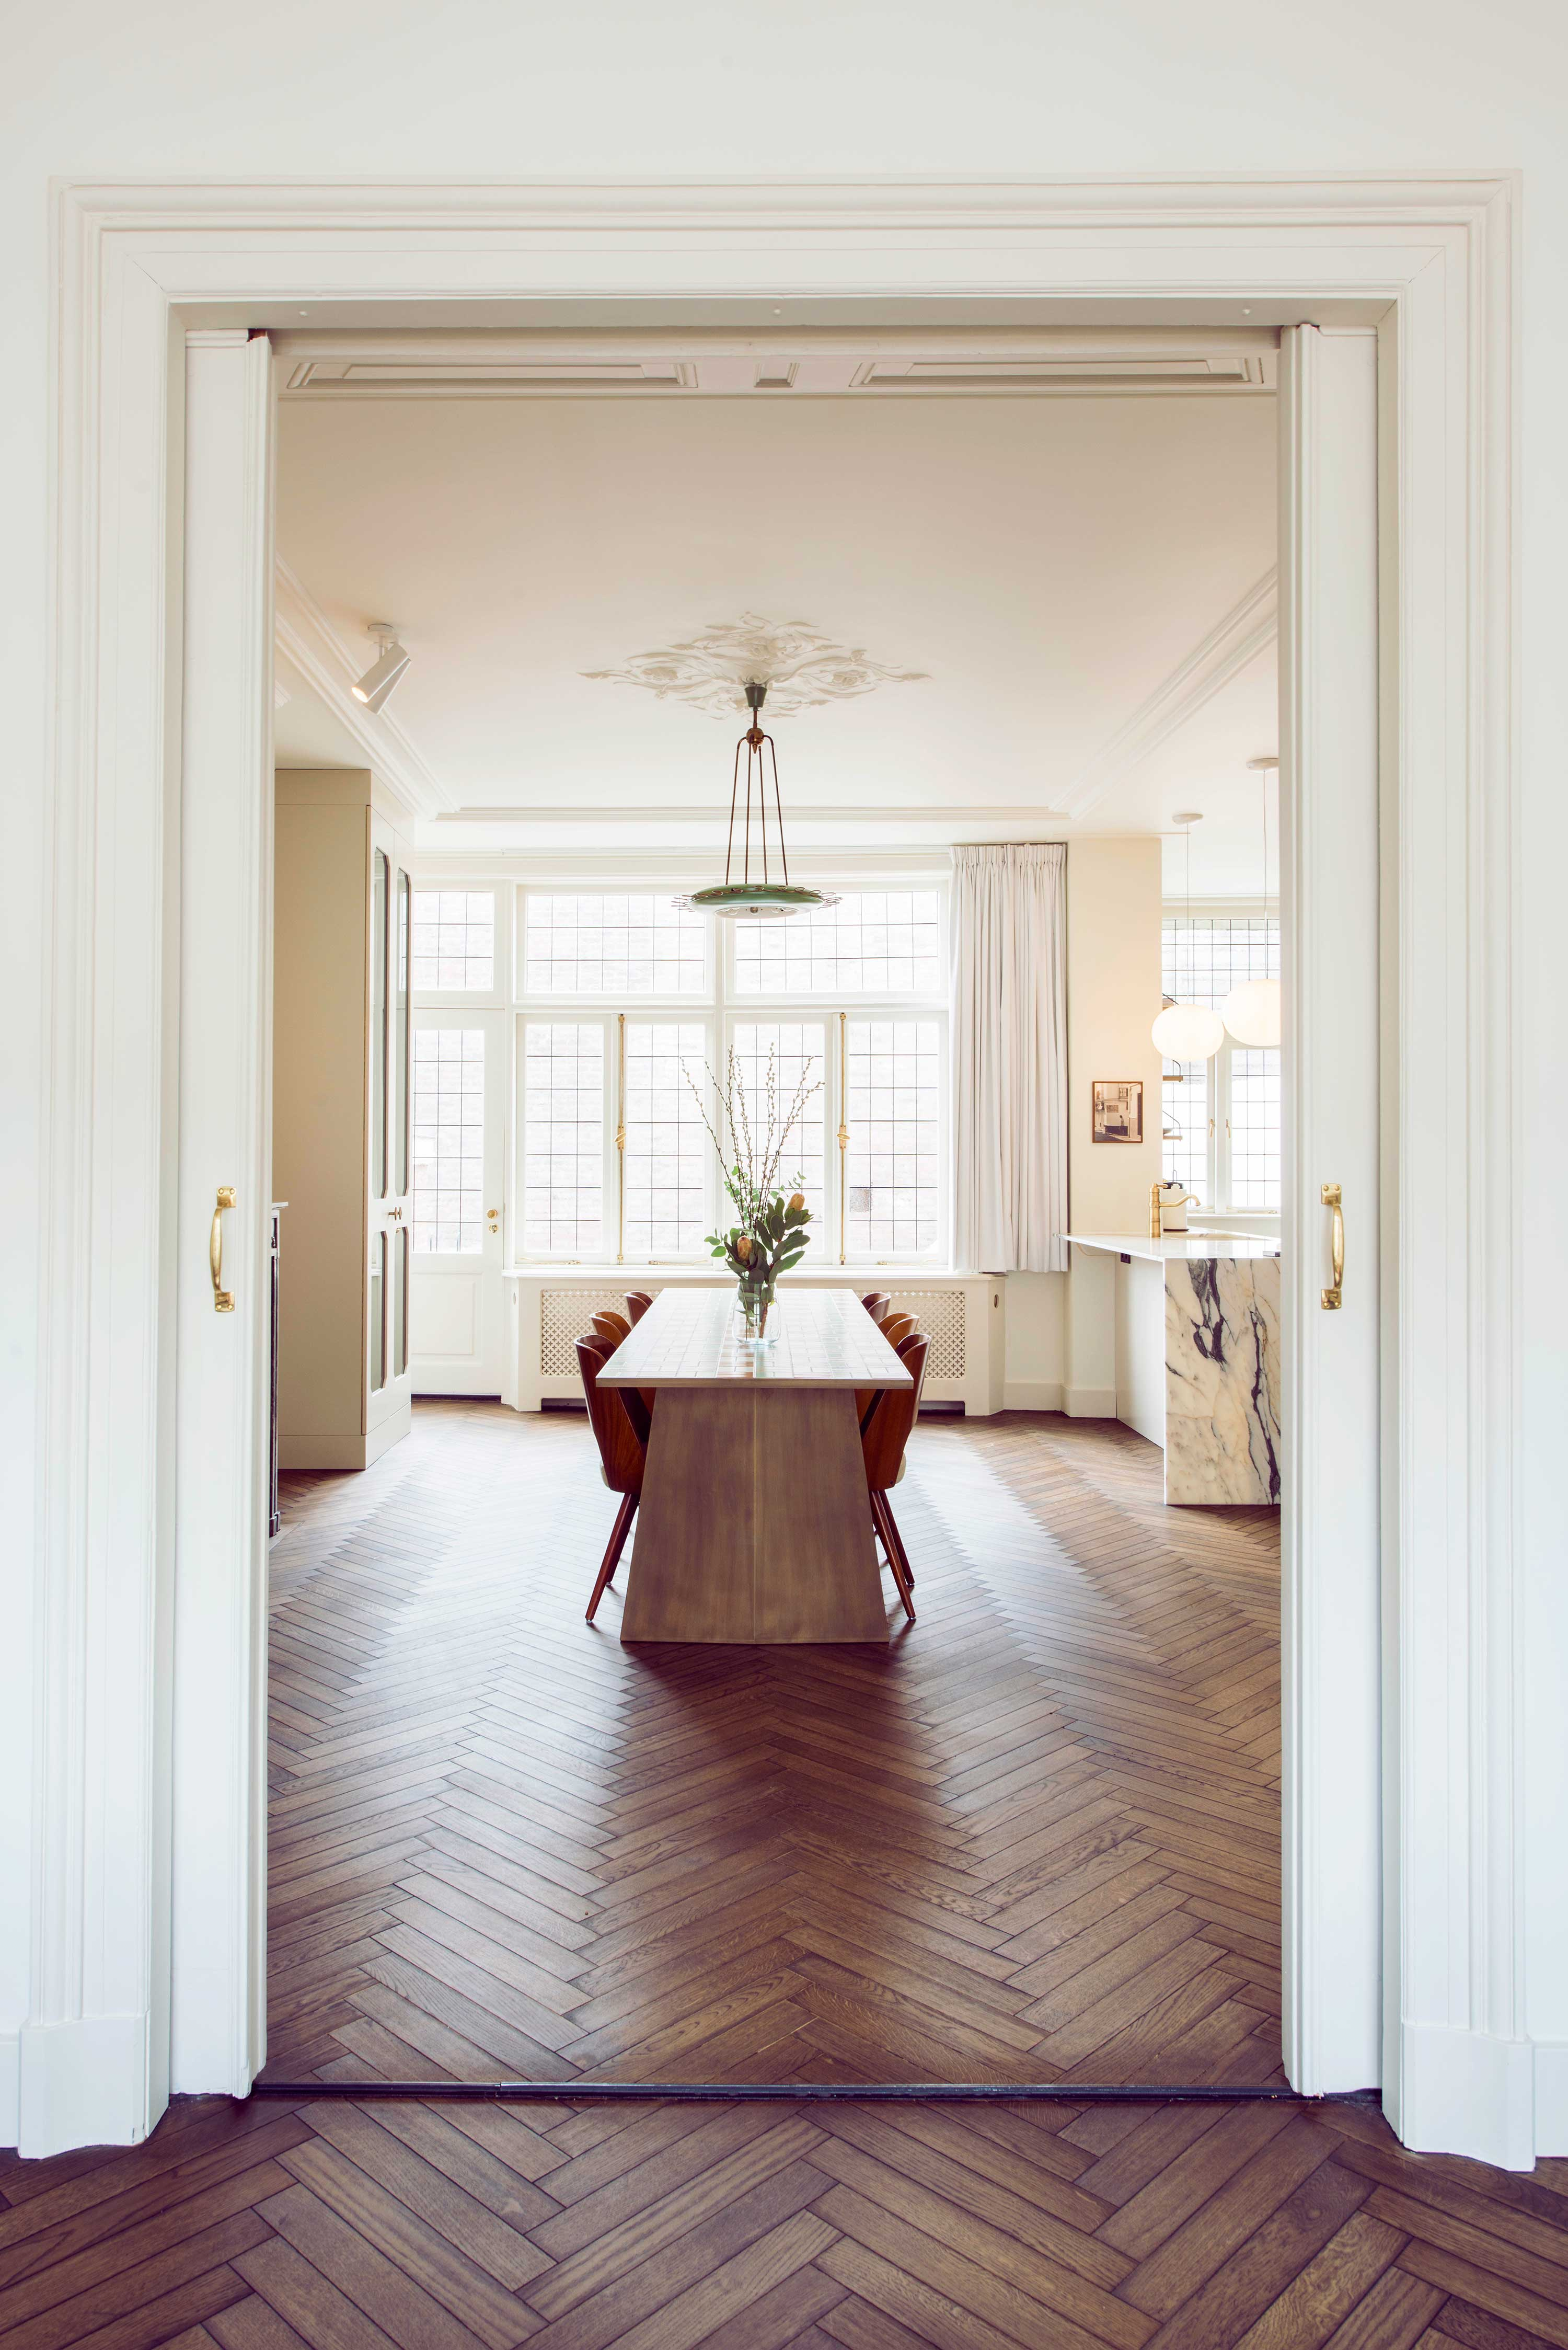 dining room design studio34 south haarlem residence interior design vintage wood herringbone floor